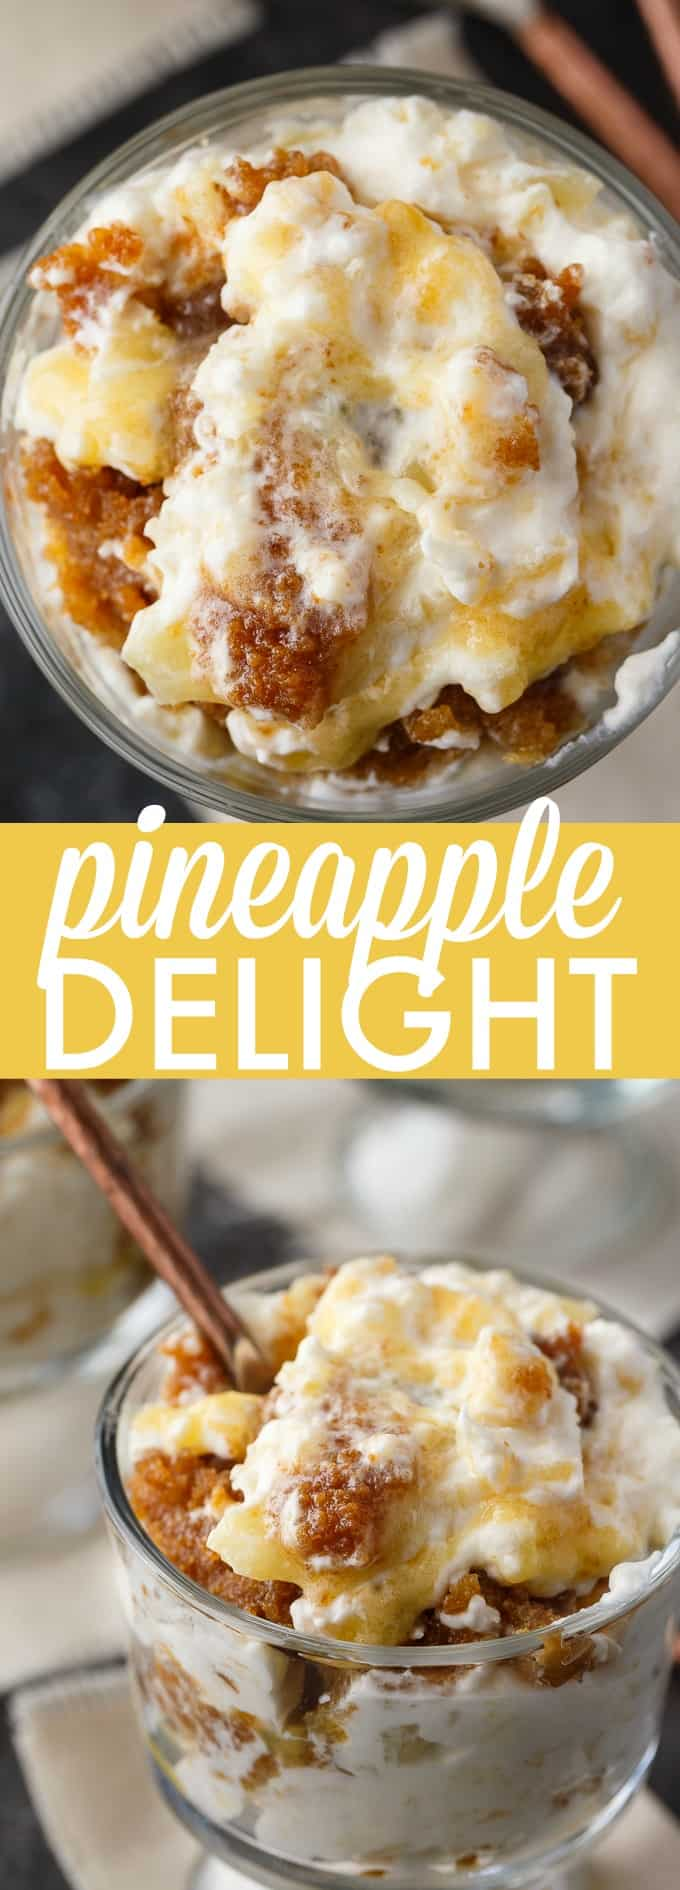 Pineapple Delight - Filled with the sweet flavors of toffee and pineapple in a creamy topping. This dessert may not be the prettiest, but it sure tastes delicious.